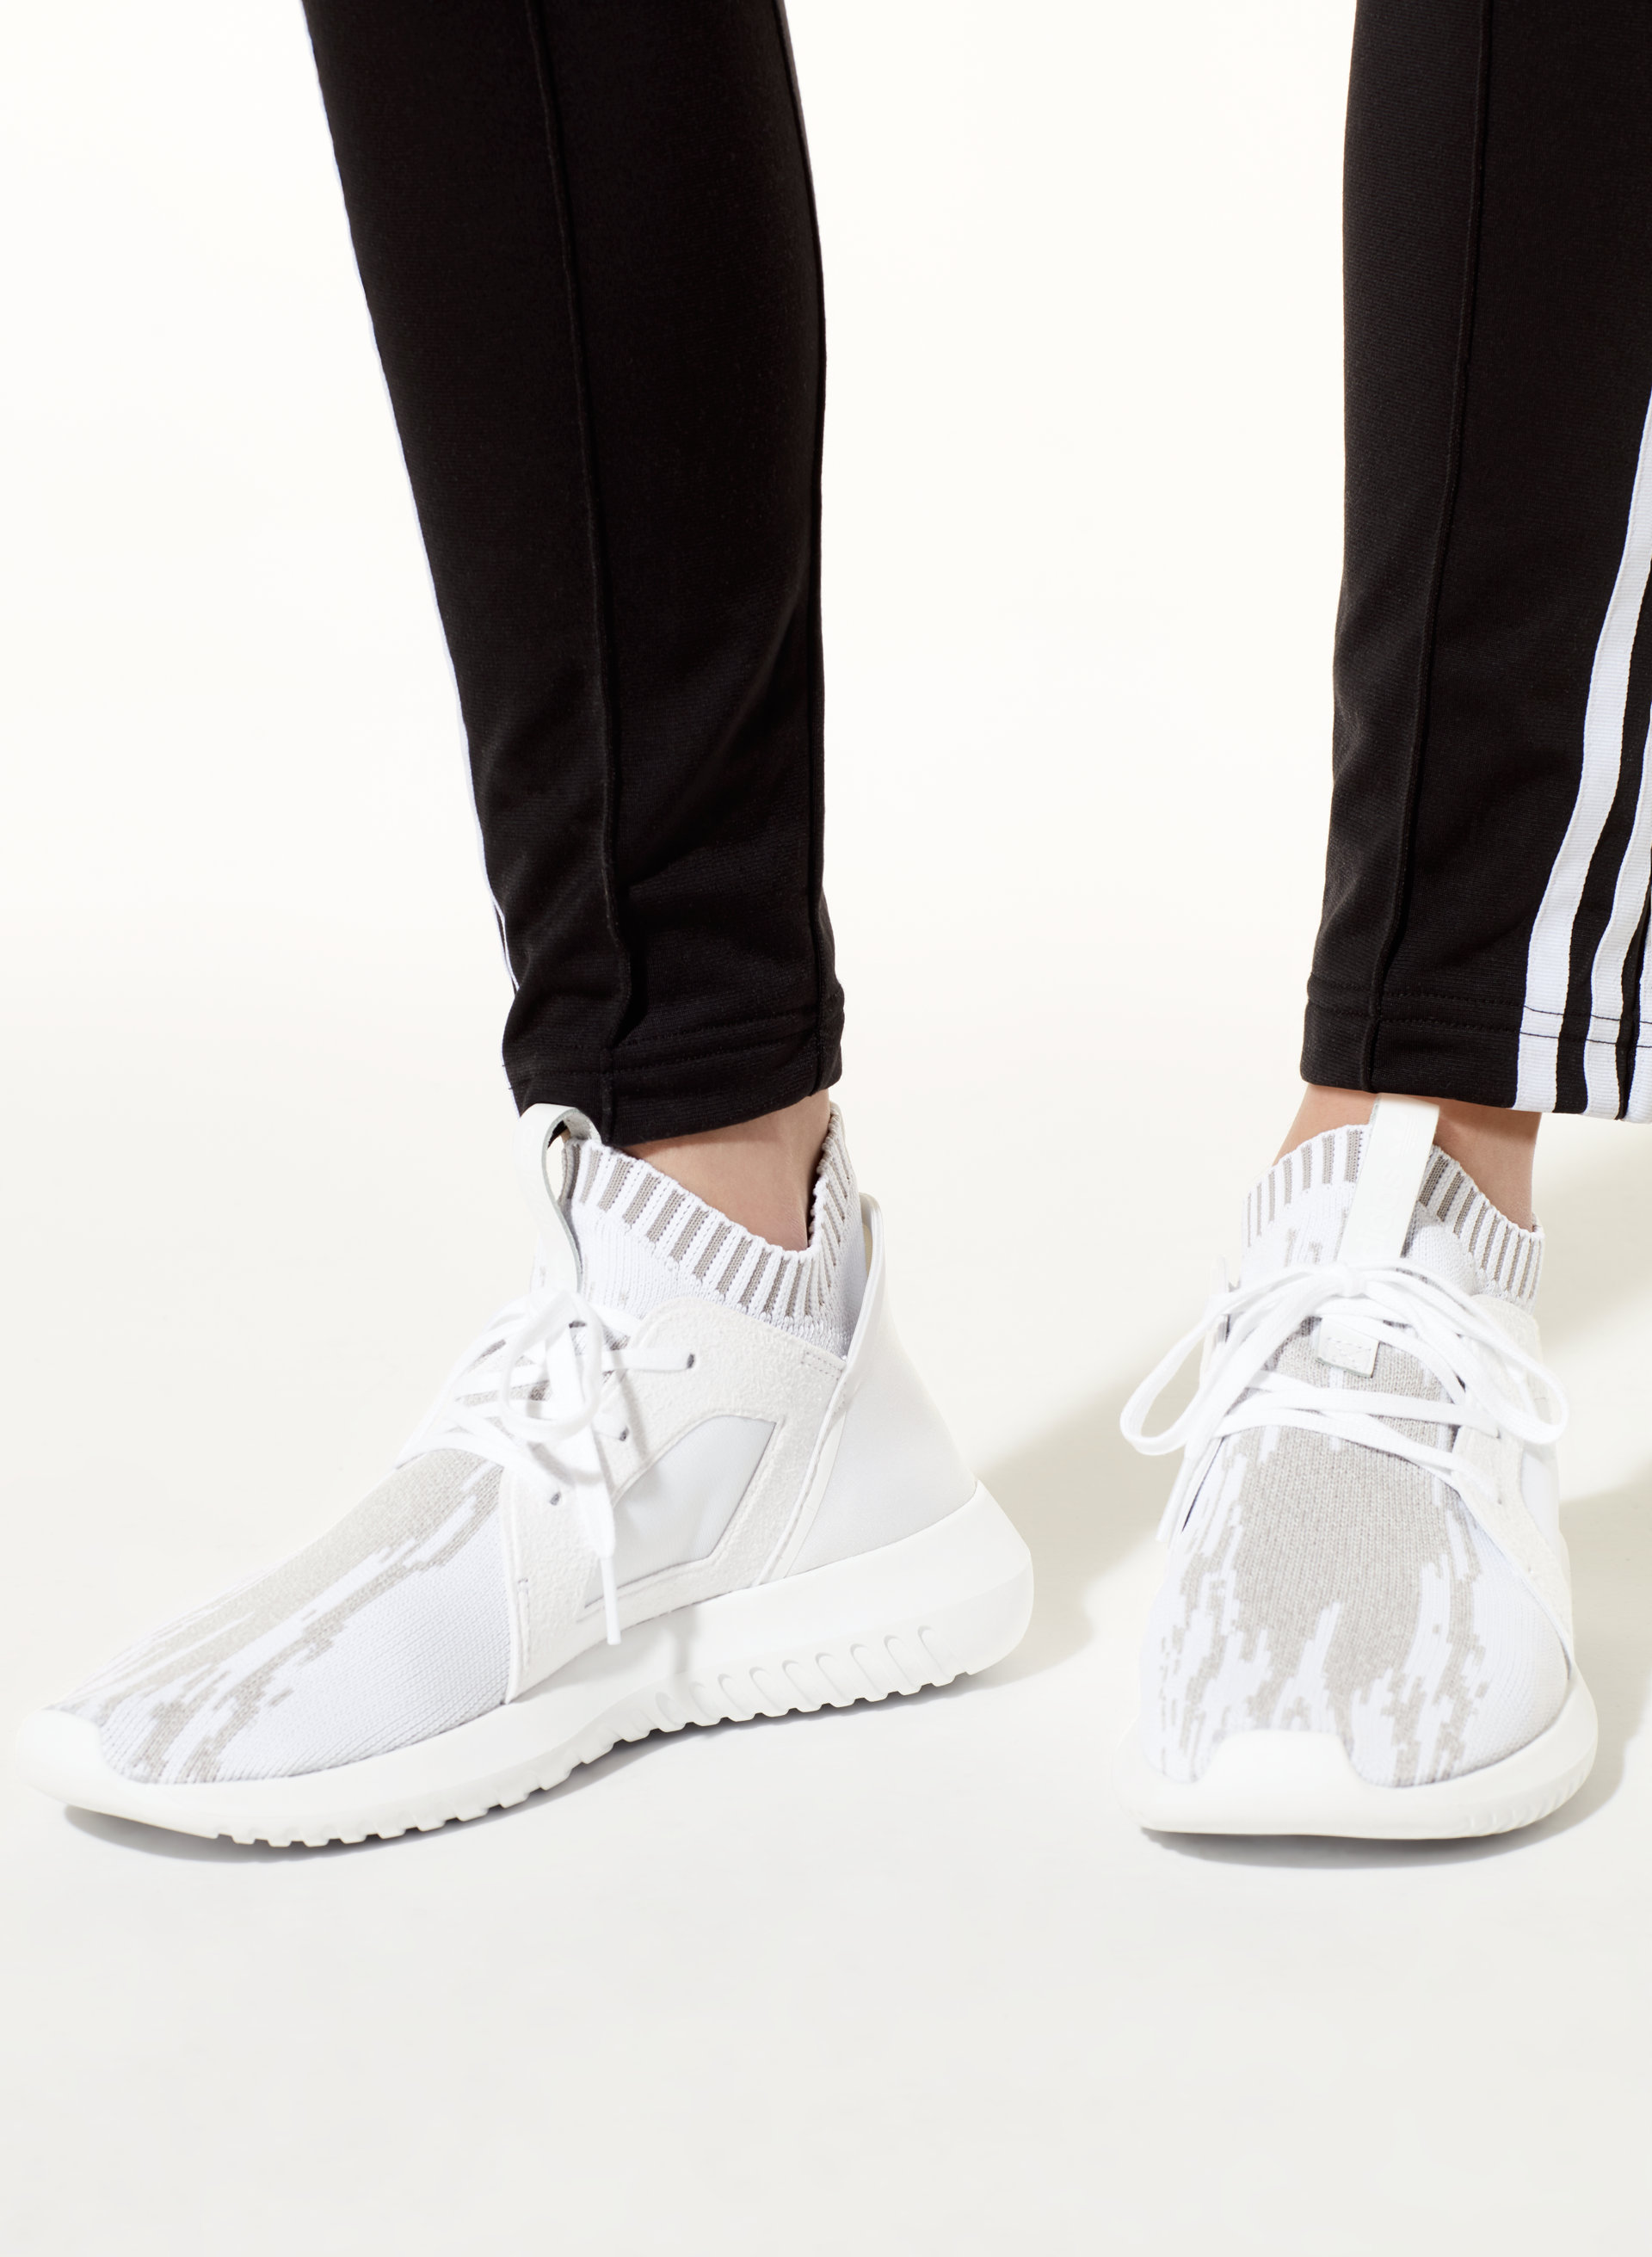 Adidas Women's Tubular Defiant W Originals Casual